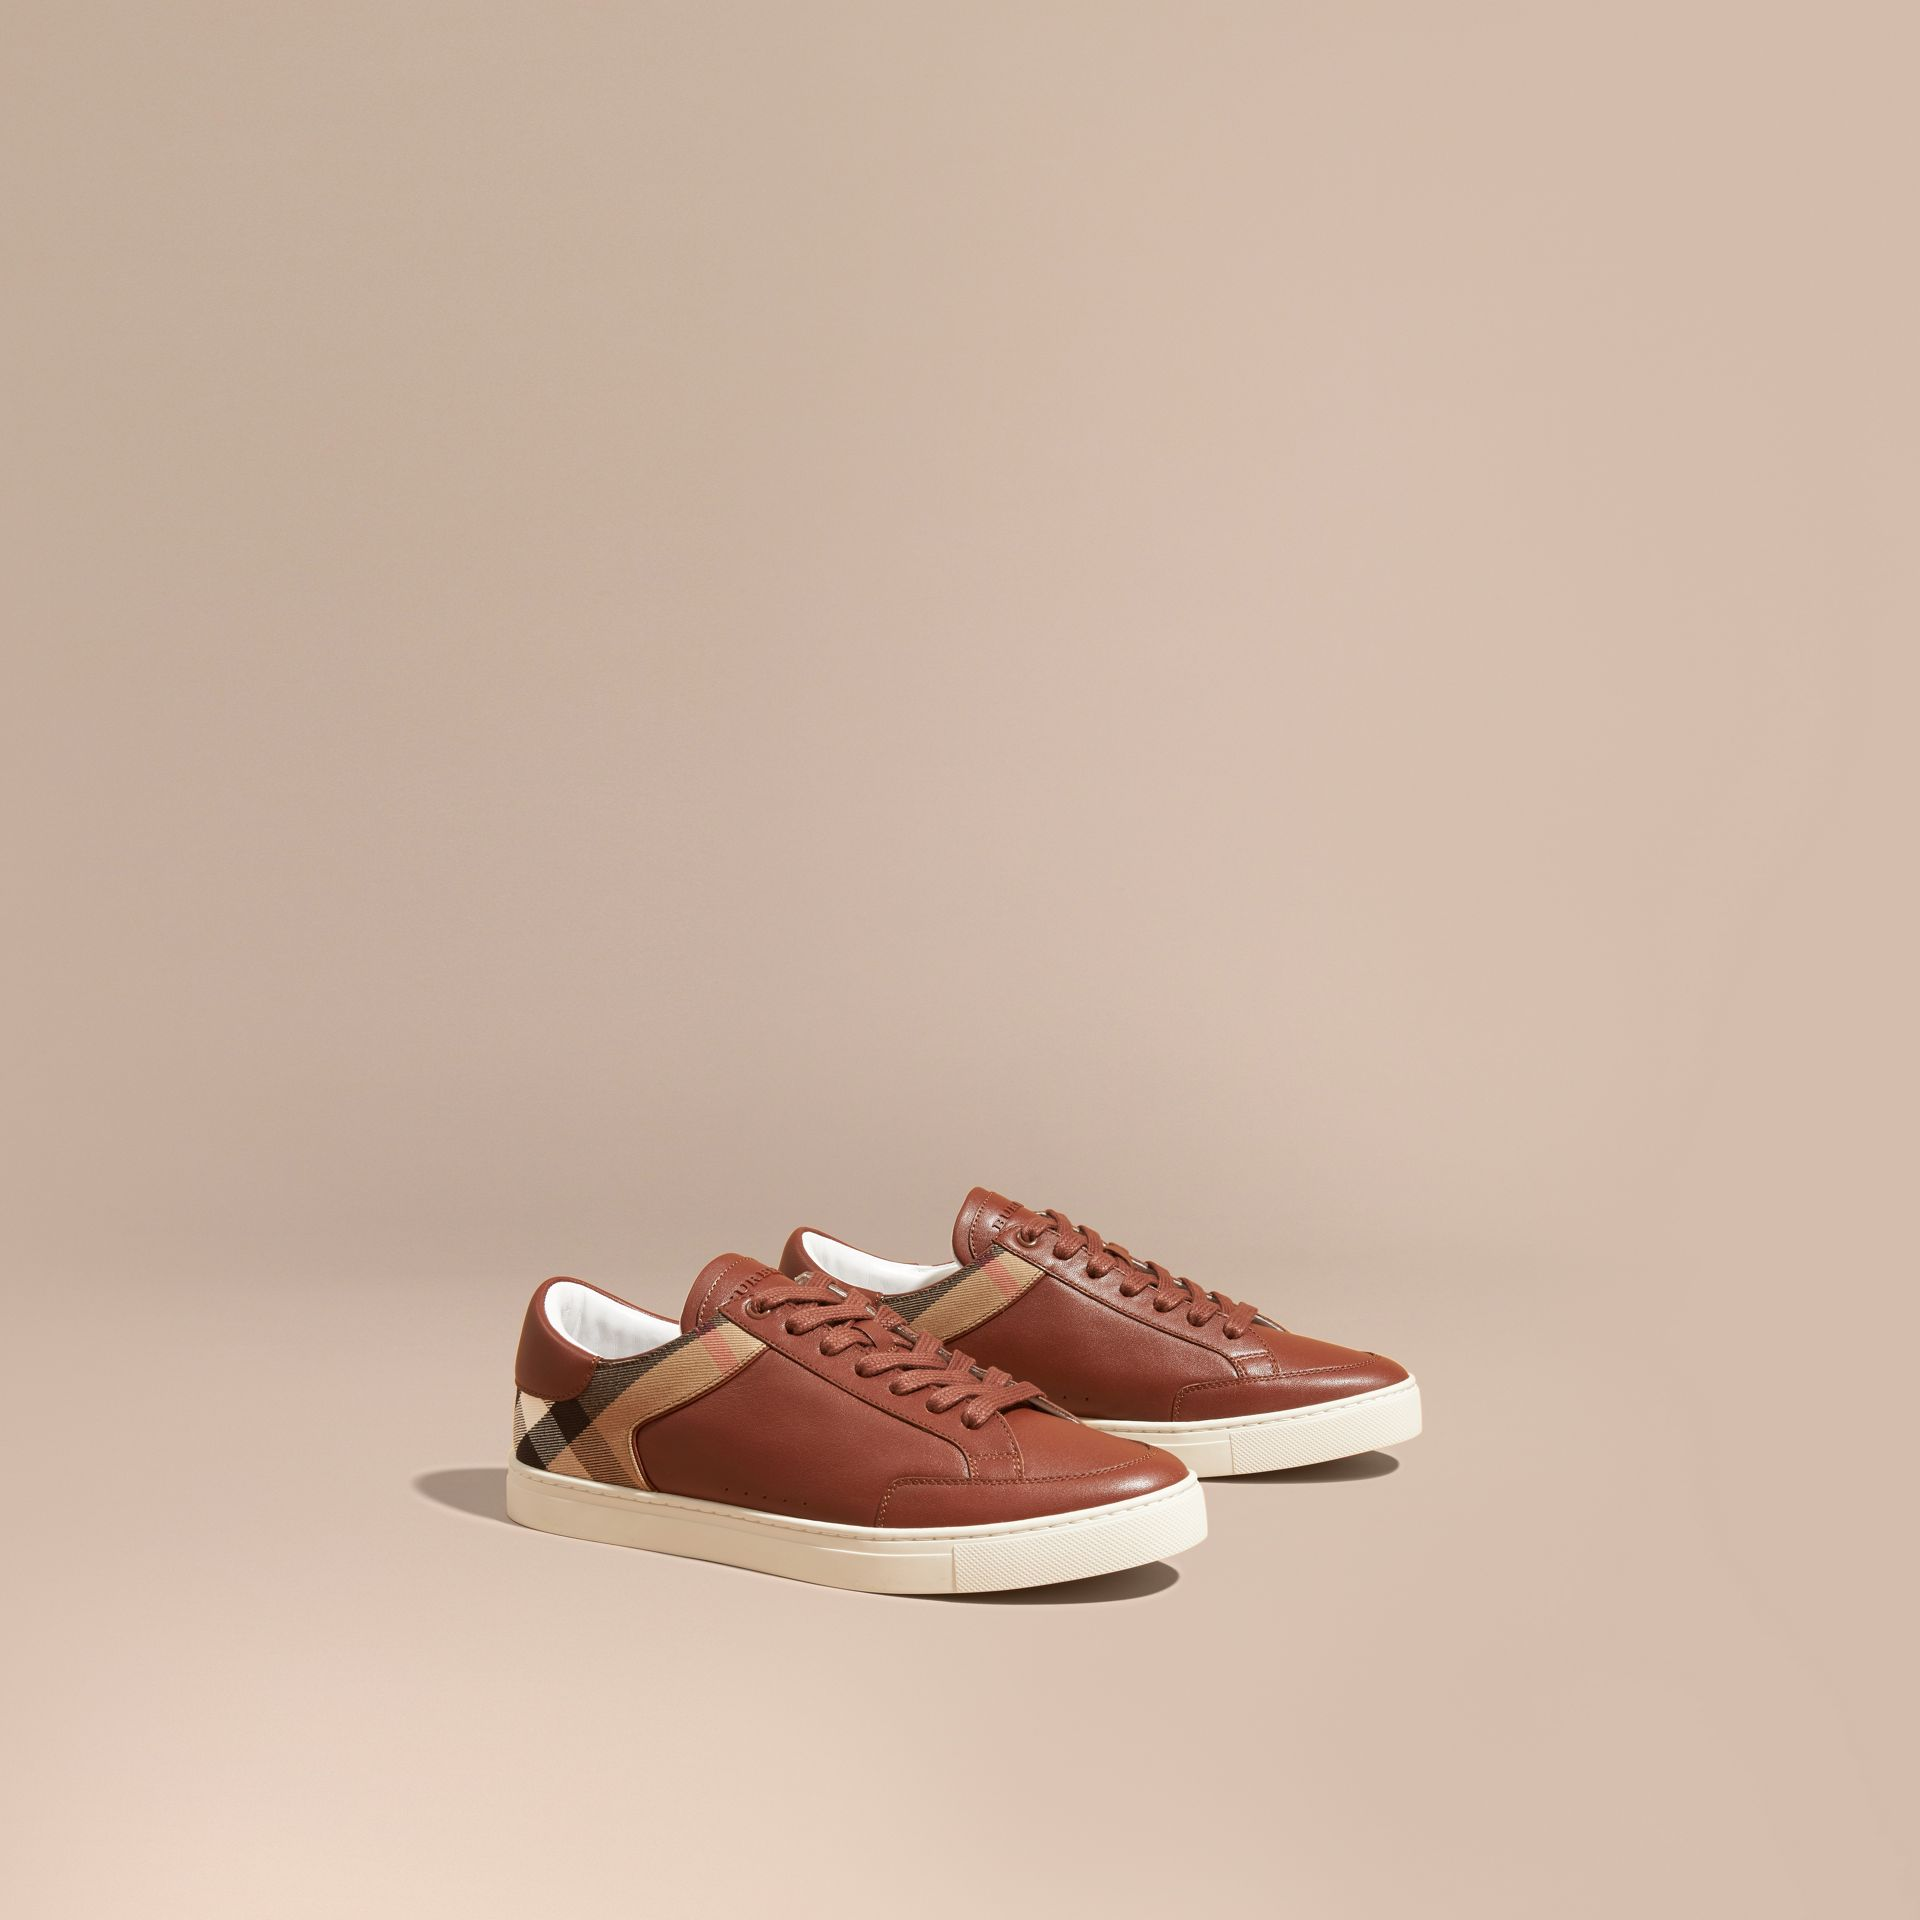 House check/bright camel Leather and House Check Trainers Check/bright Camel - gallery image 1